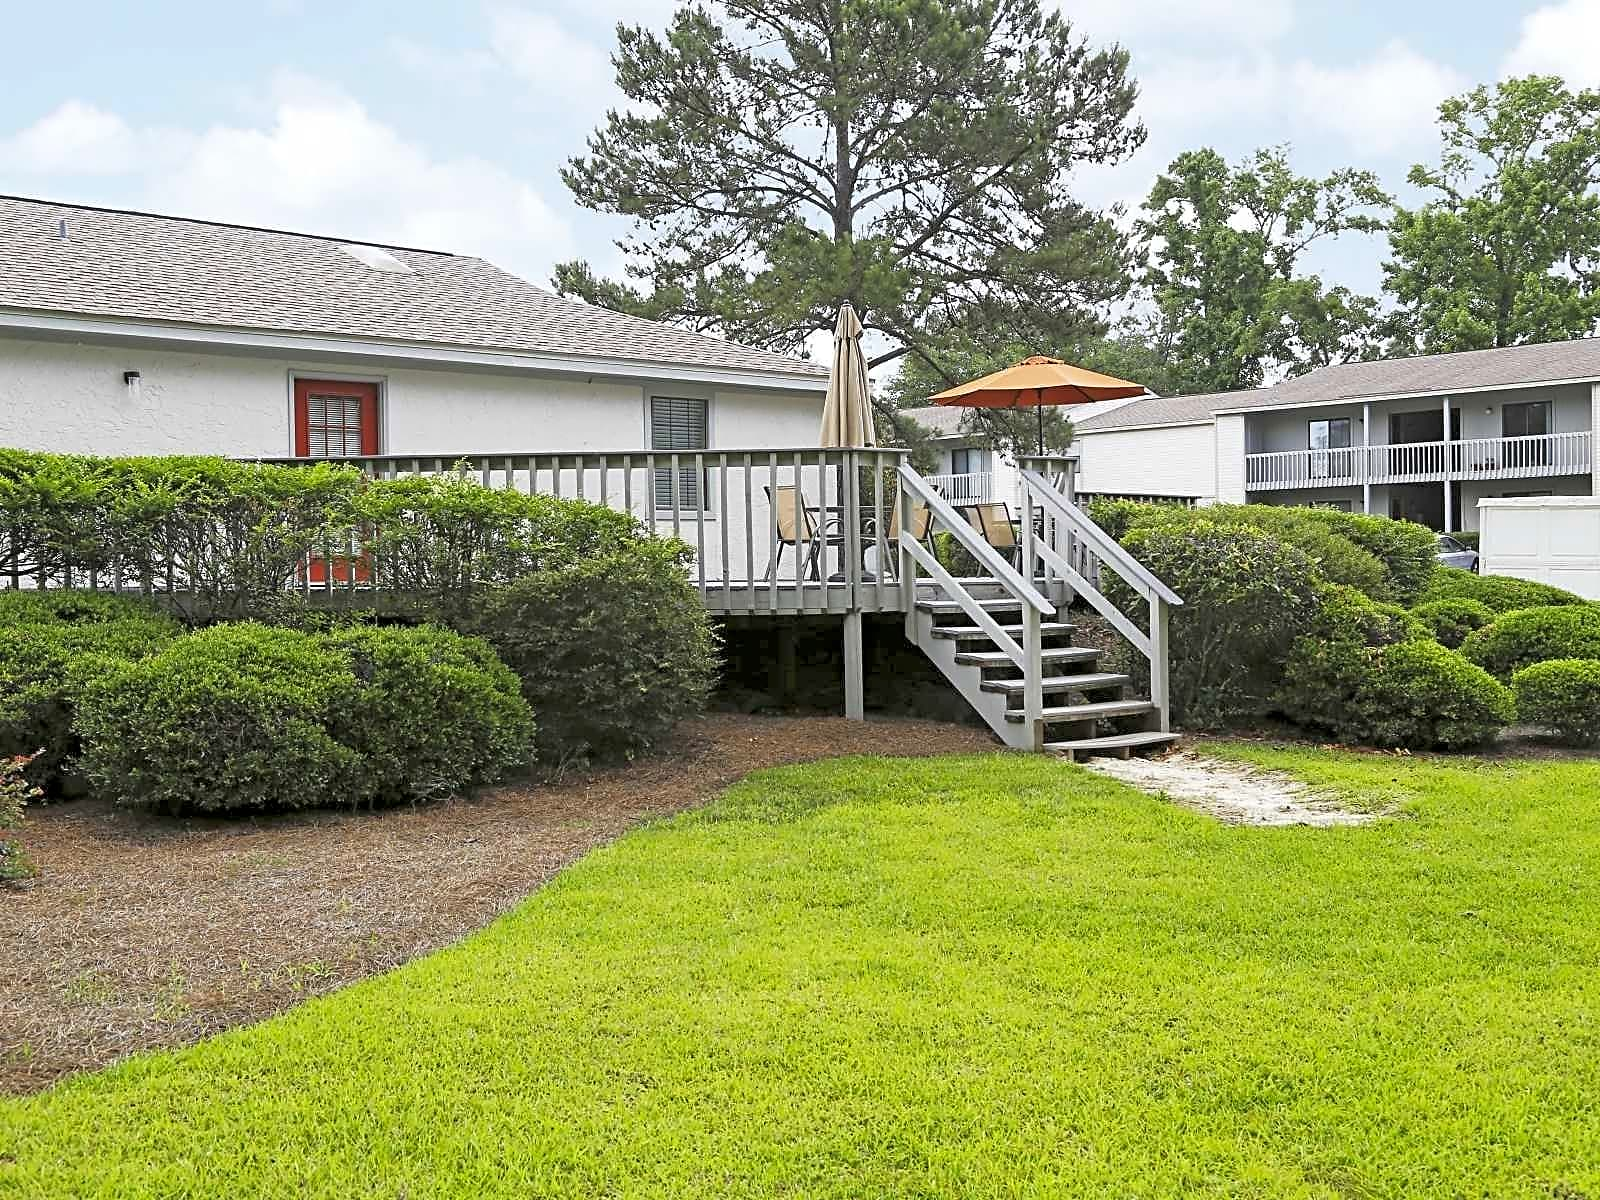 kessler point apartments garden city ga 31408 87920